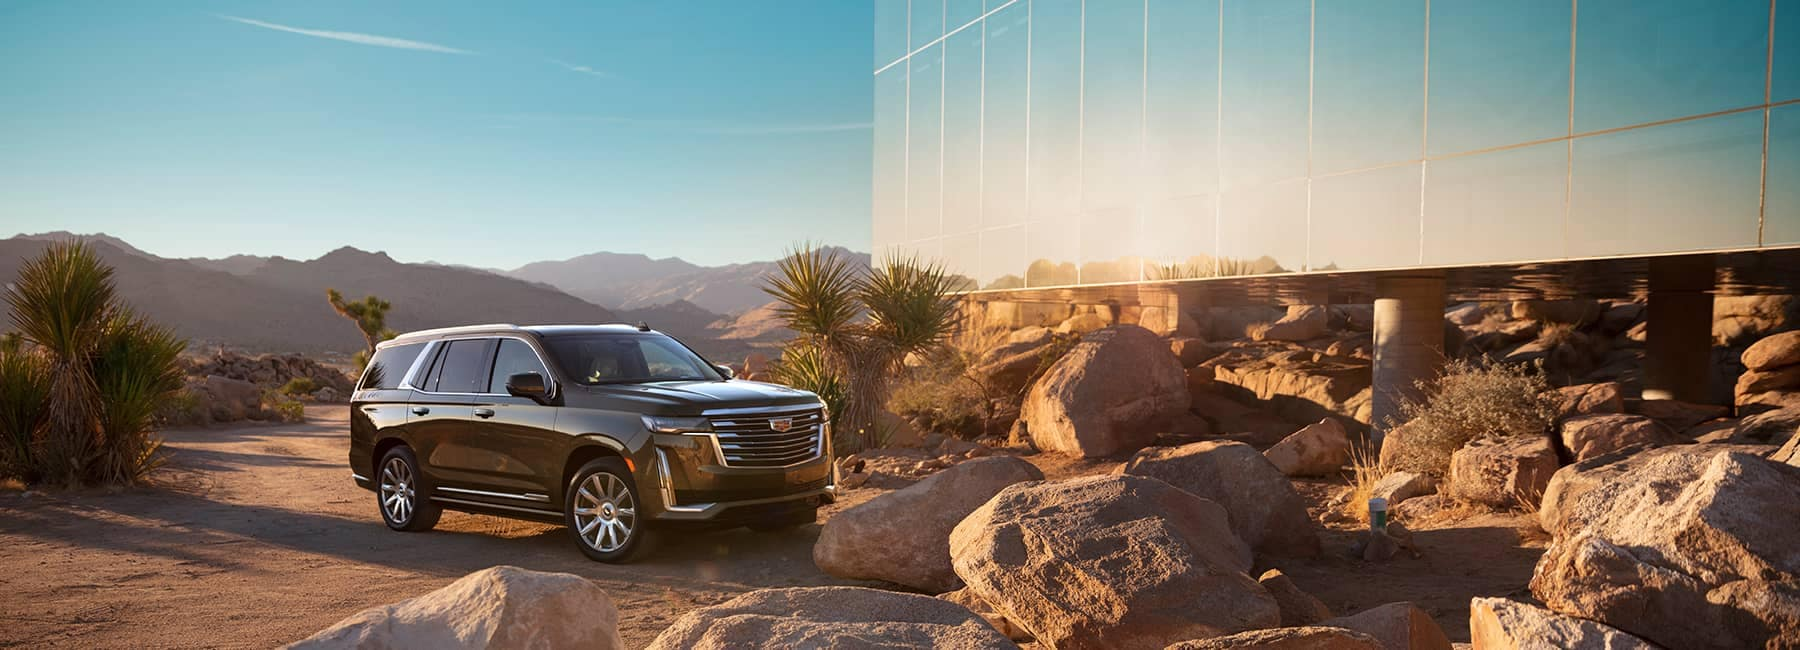 Cadillac in the desert under the sunlight